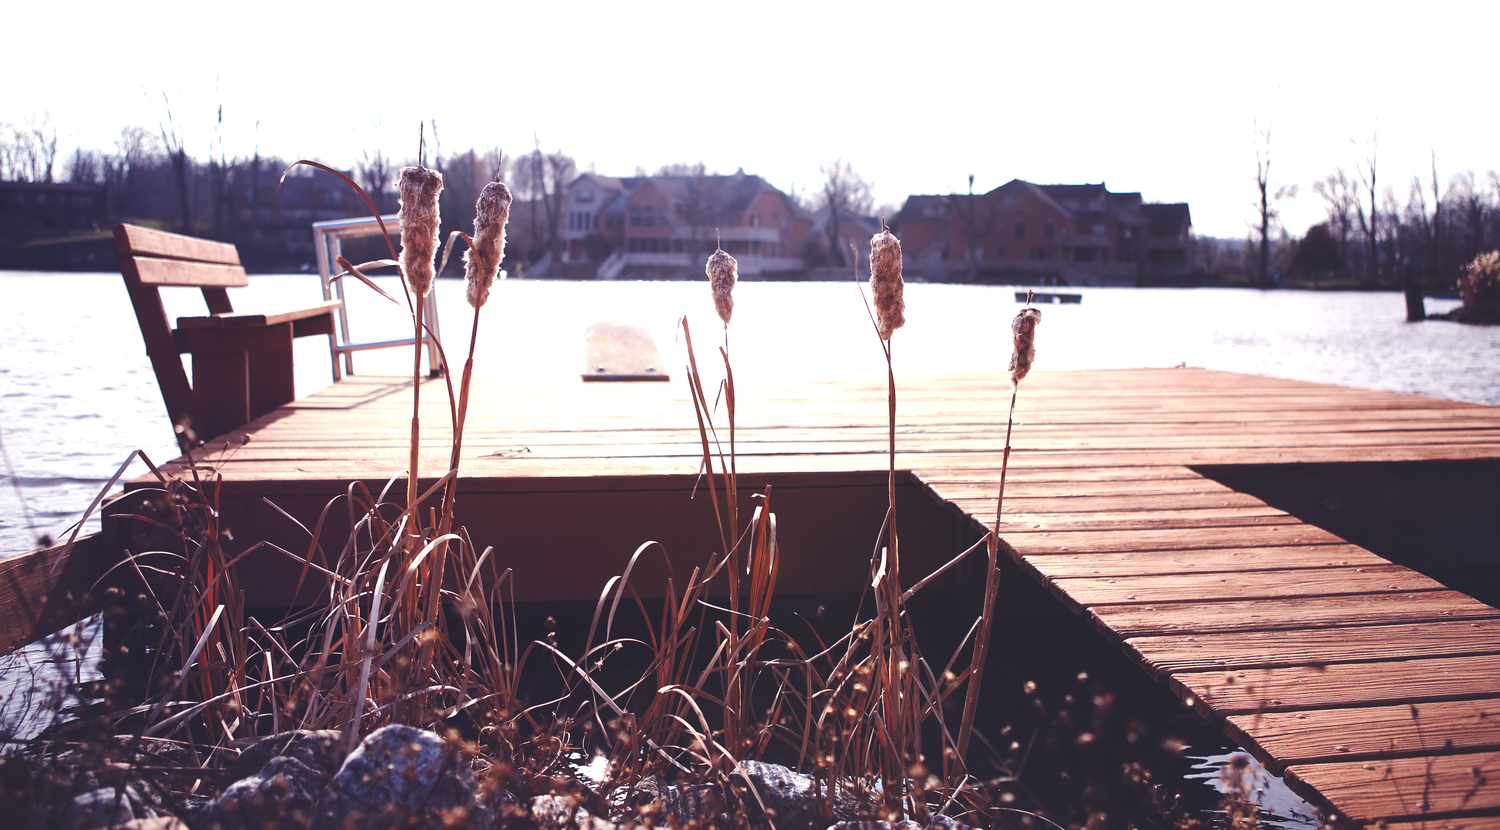 I took this during my recent visit back home over Thanksgiving Break. This dock overlooksthe lake in front of my house in Kokomo.